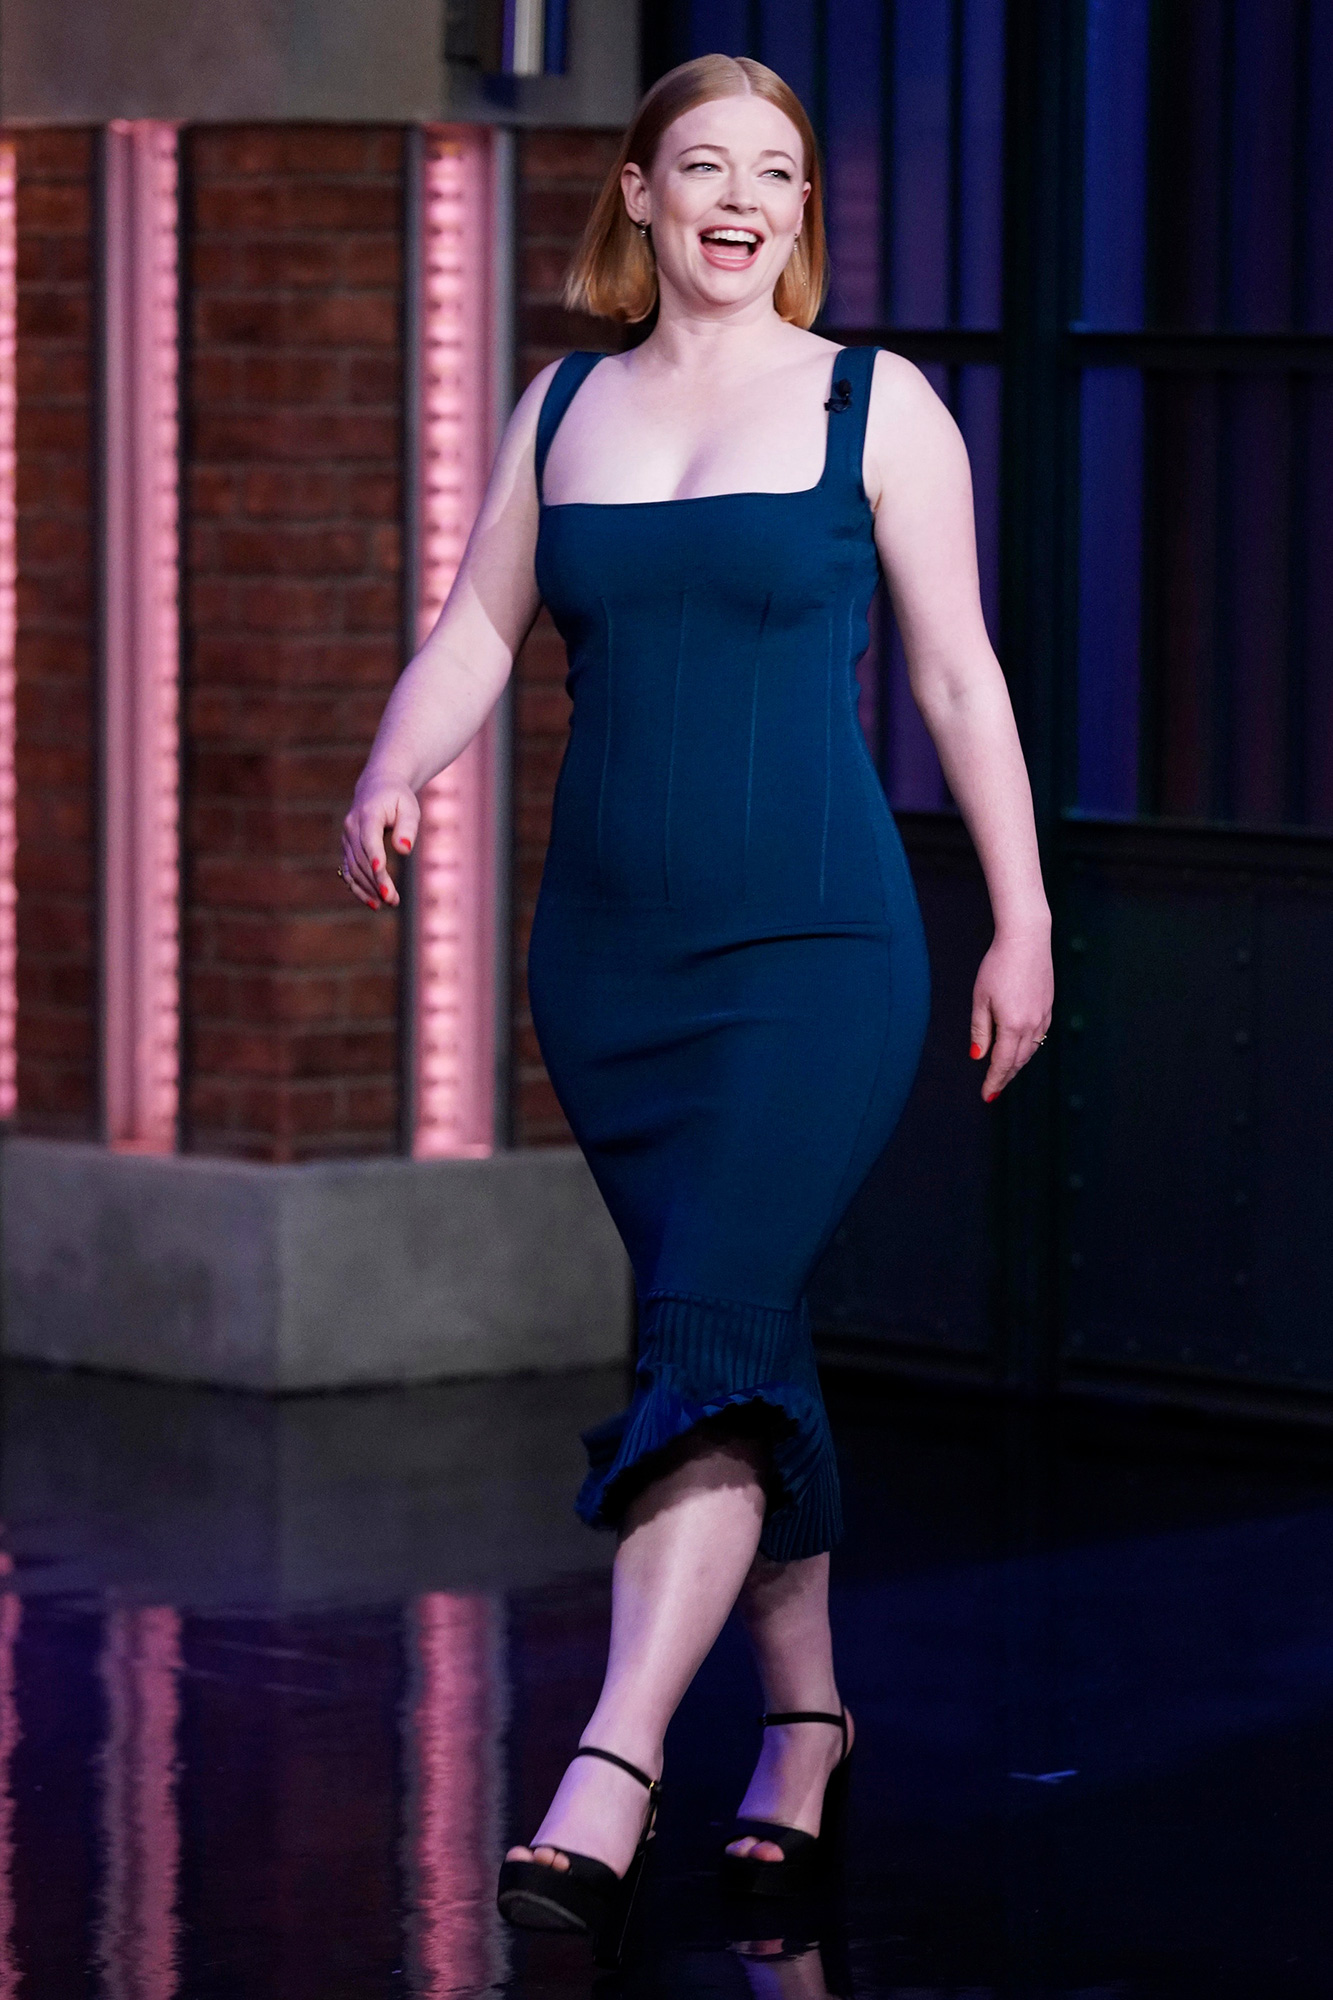 LATE NIGHT WITH SETH MEYERS -- Episode 1208A -- Pictured:Actress Sarah Snook arrives on October 13, 2021